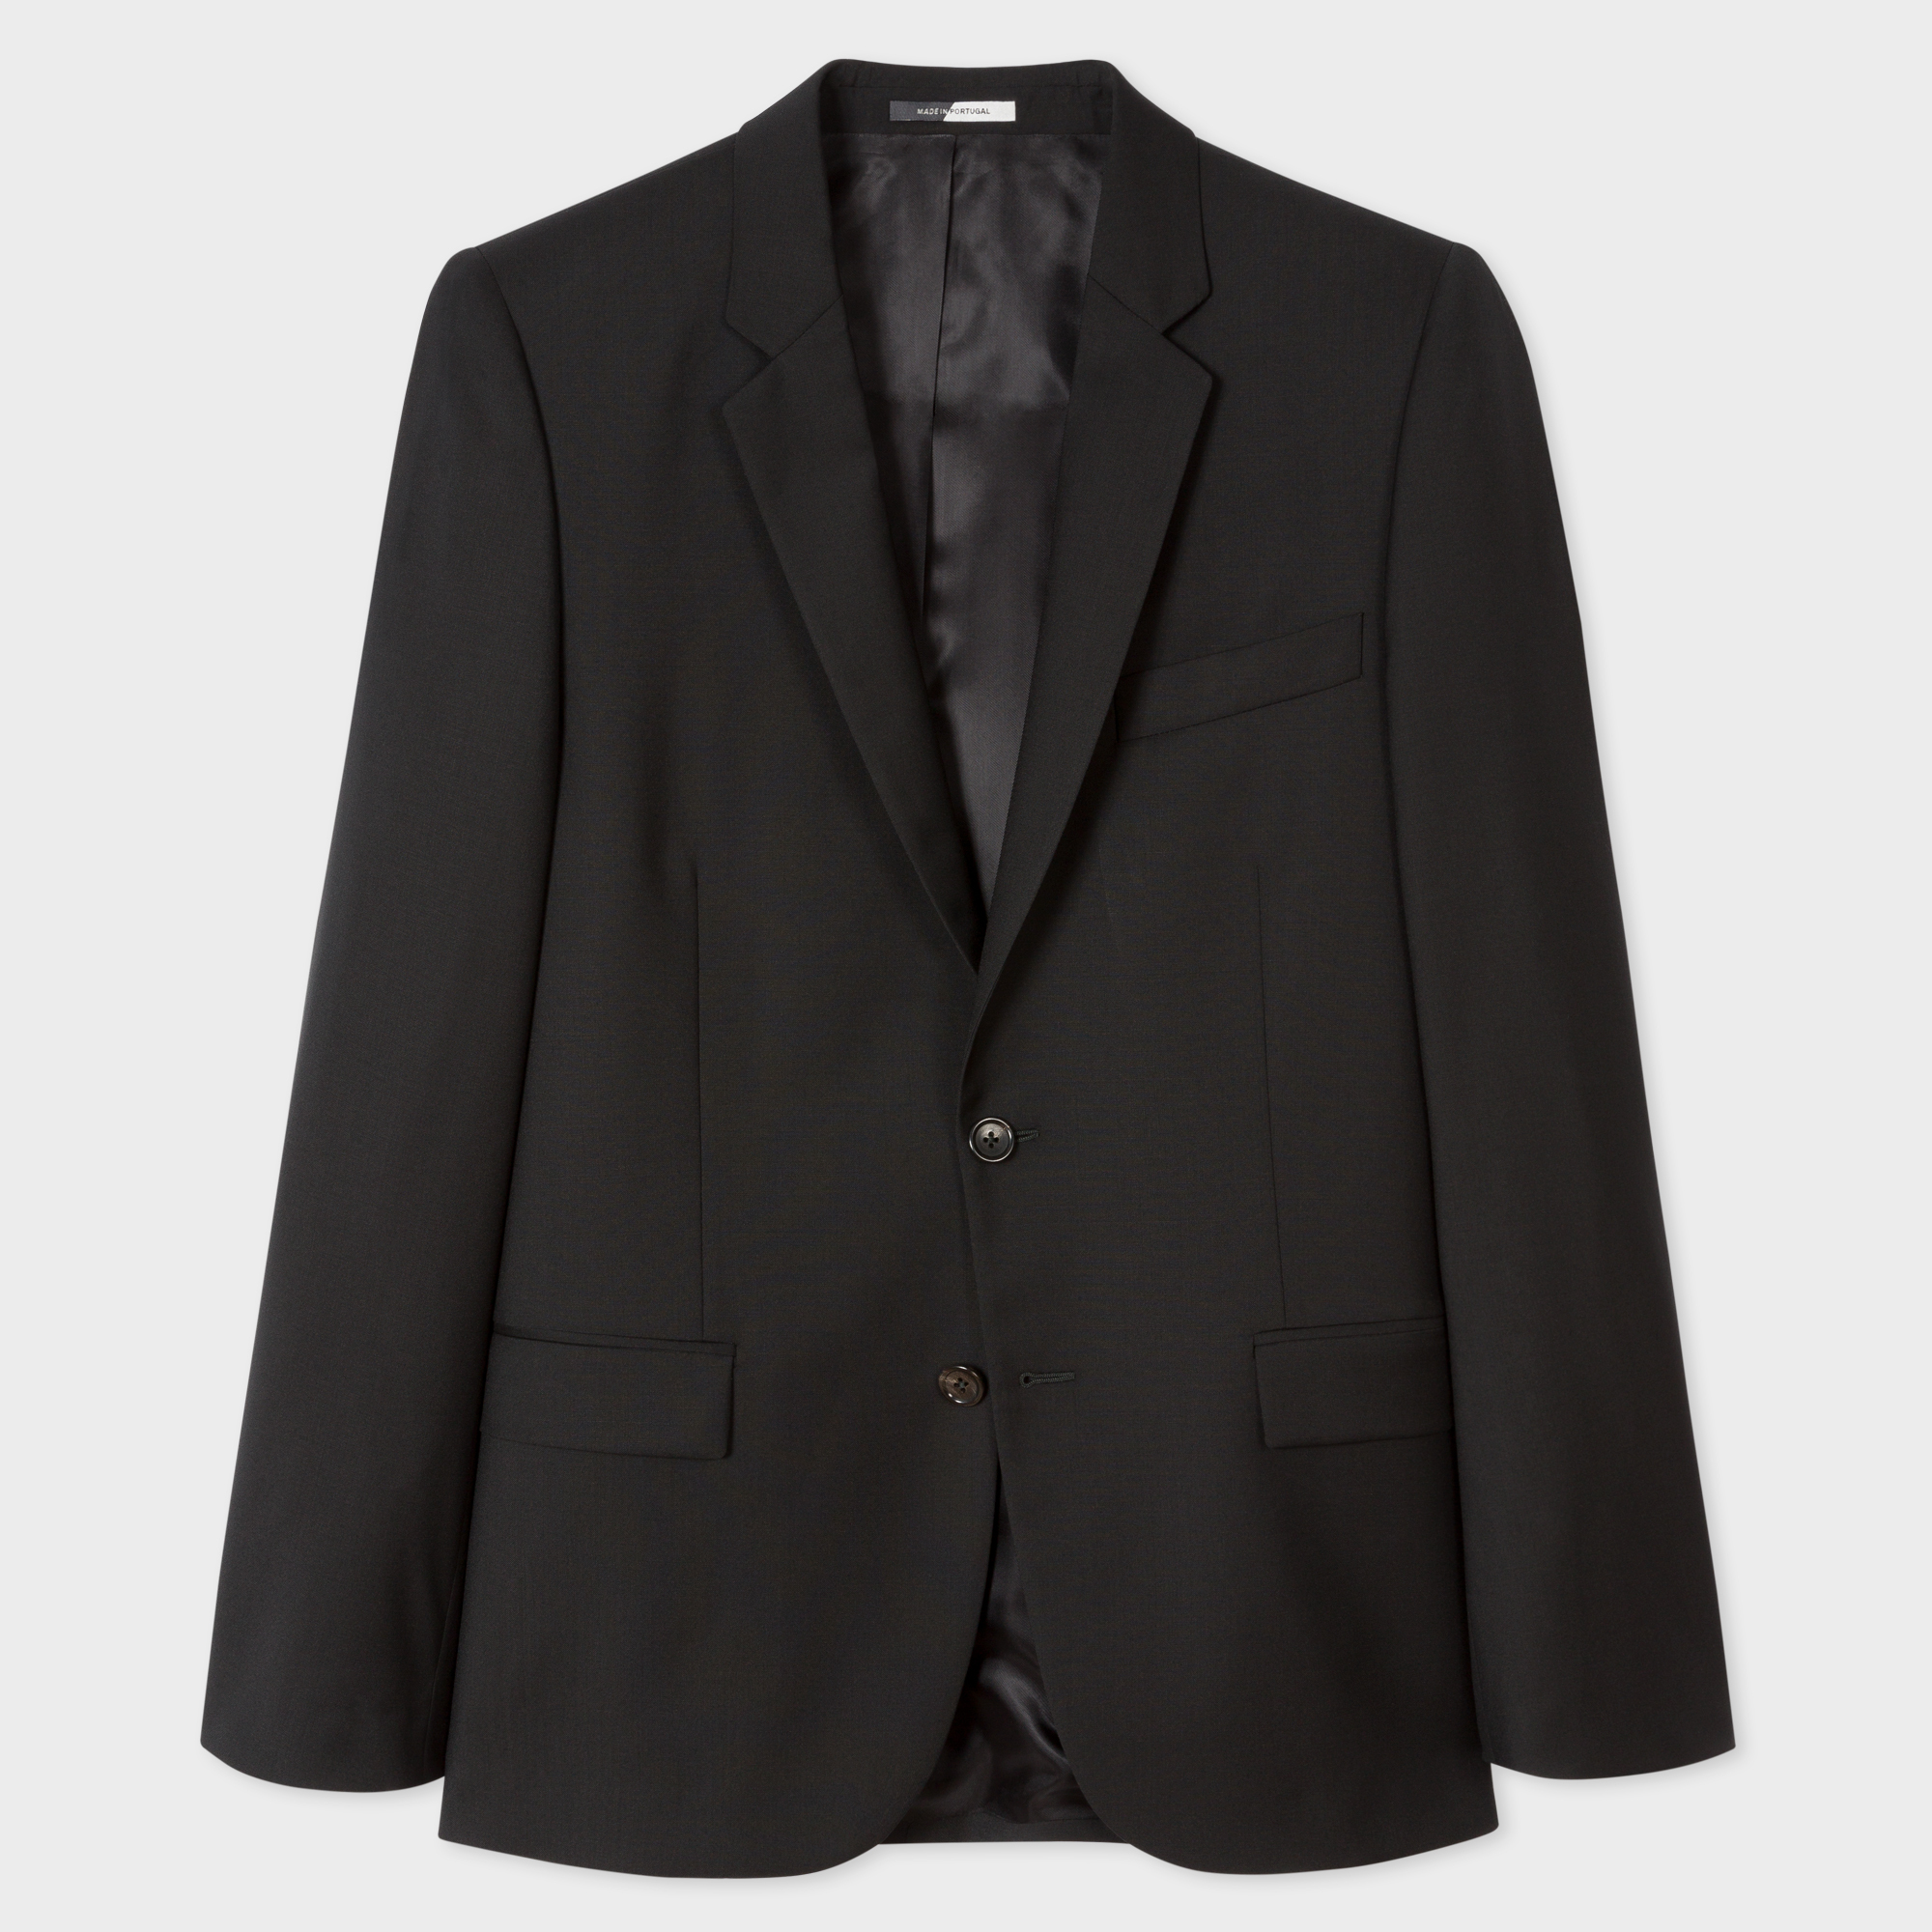 Paul Smith Men's Mid-Fit Black Wool Blazer